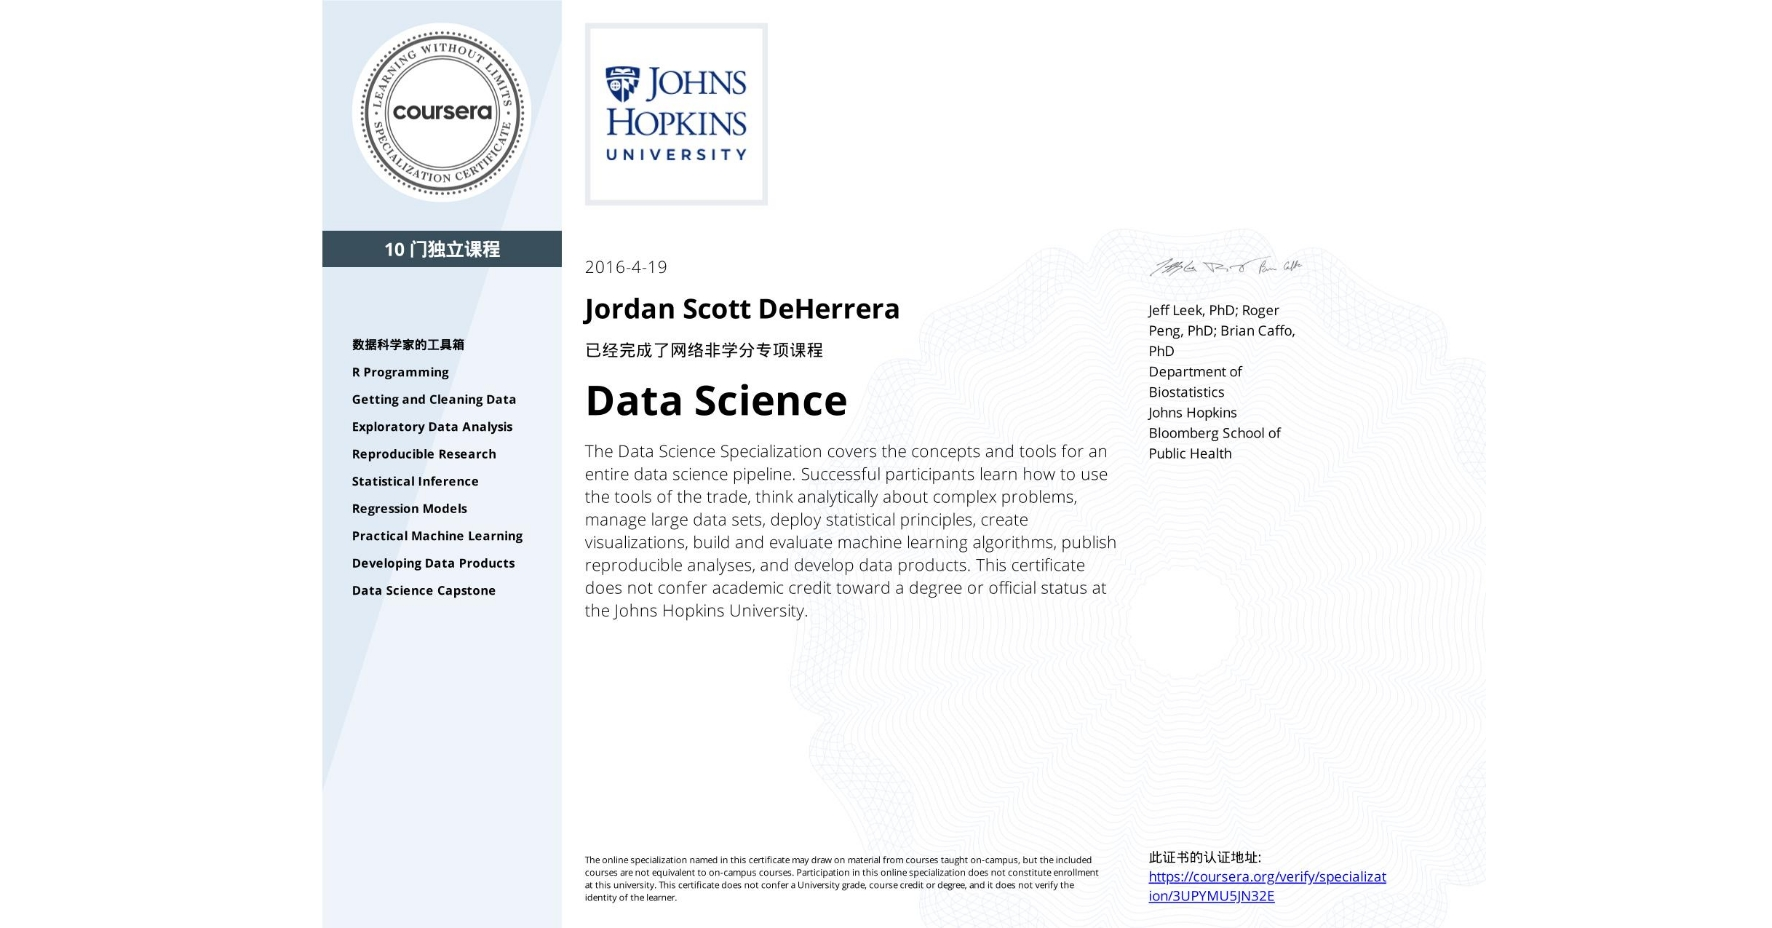 View certificate for Jordan Scott DeHerrera, Data Science, offered through Coursera. The Data Science Specialization covers the concepts and tools for an entire data science pipeline. Successful participants learn how to use the tools of the trade, think analytically about complex problems, manage large data sets, deploy statistical principles, create visualizations, build and evaluate machine learning algorithms, publish reproducible analyses, and develop data products.    This certificate does not confer academic credit toward a degree or official status at the Johns Hopkins University.